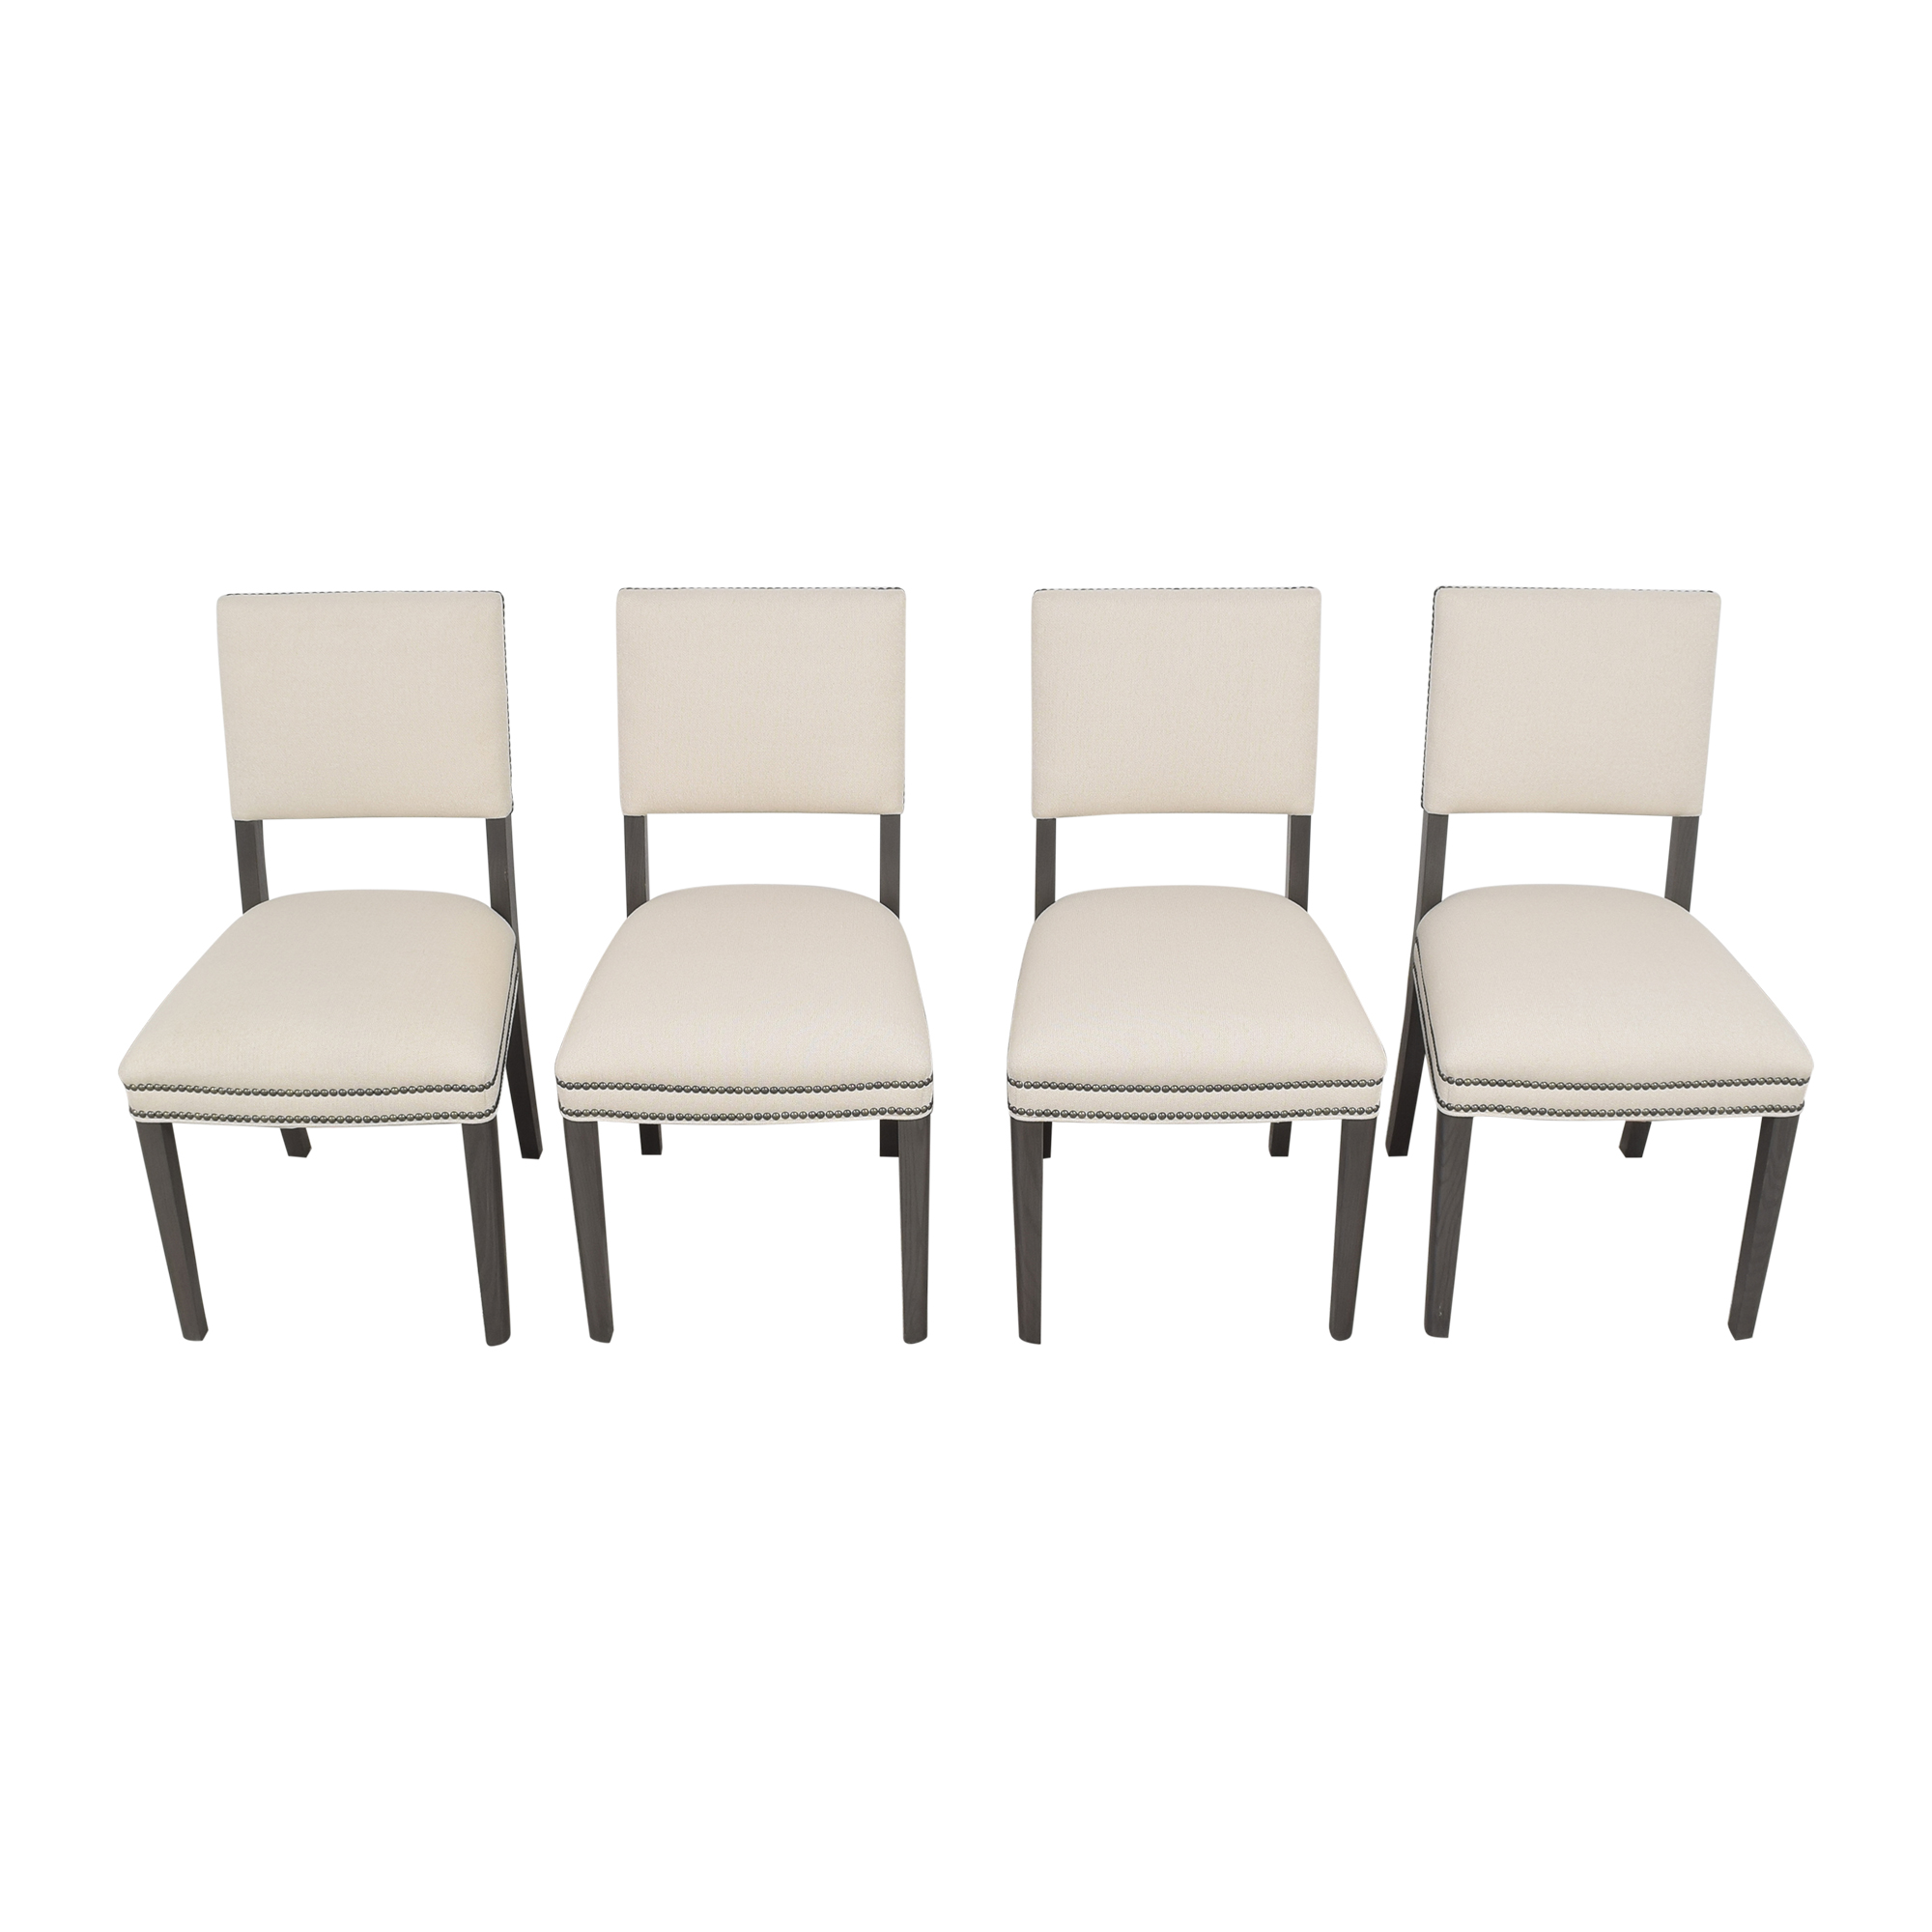 Vanguard Furniture Vanguard Furniture Newton Stocked Dining Chairs discount